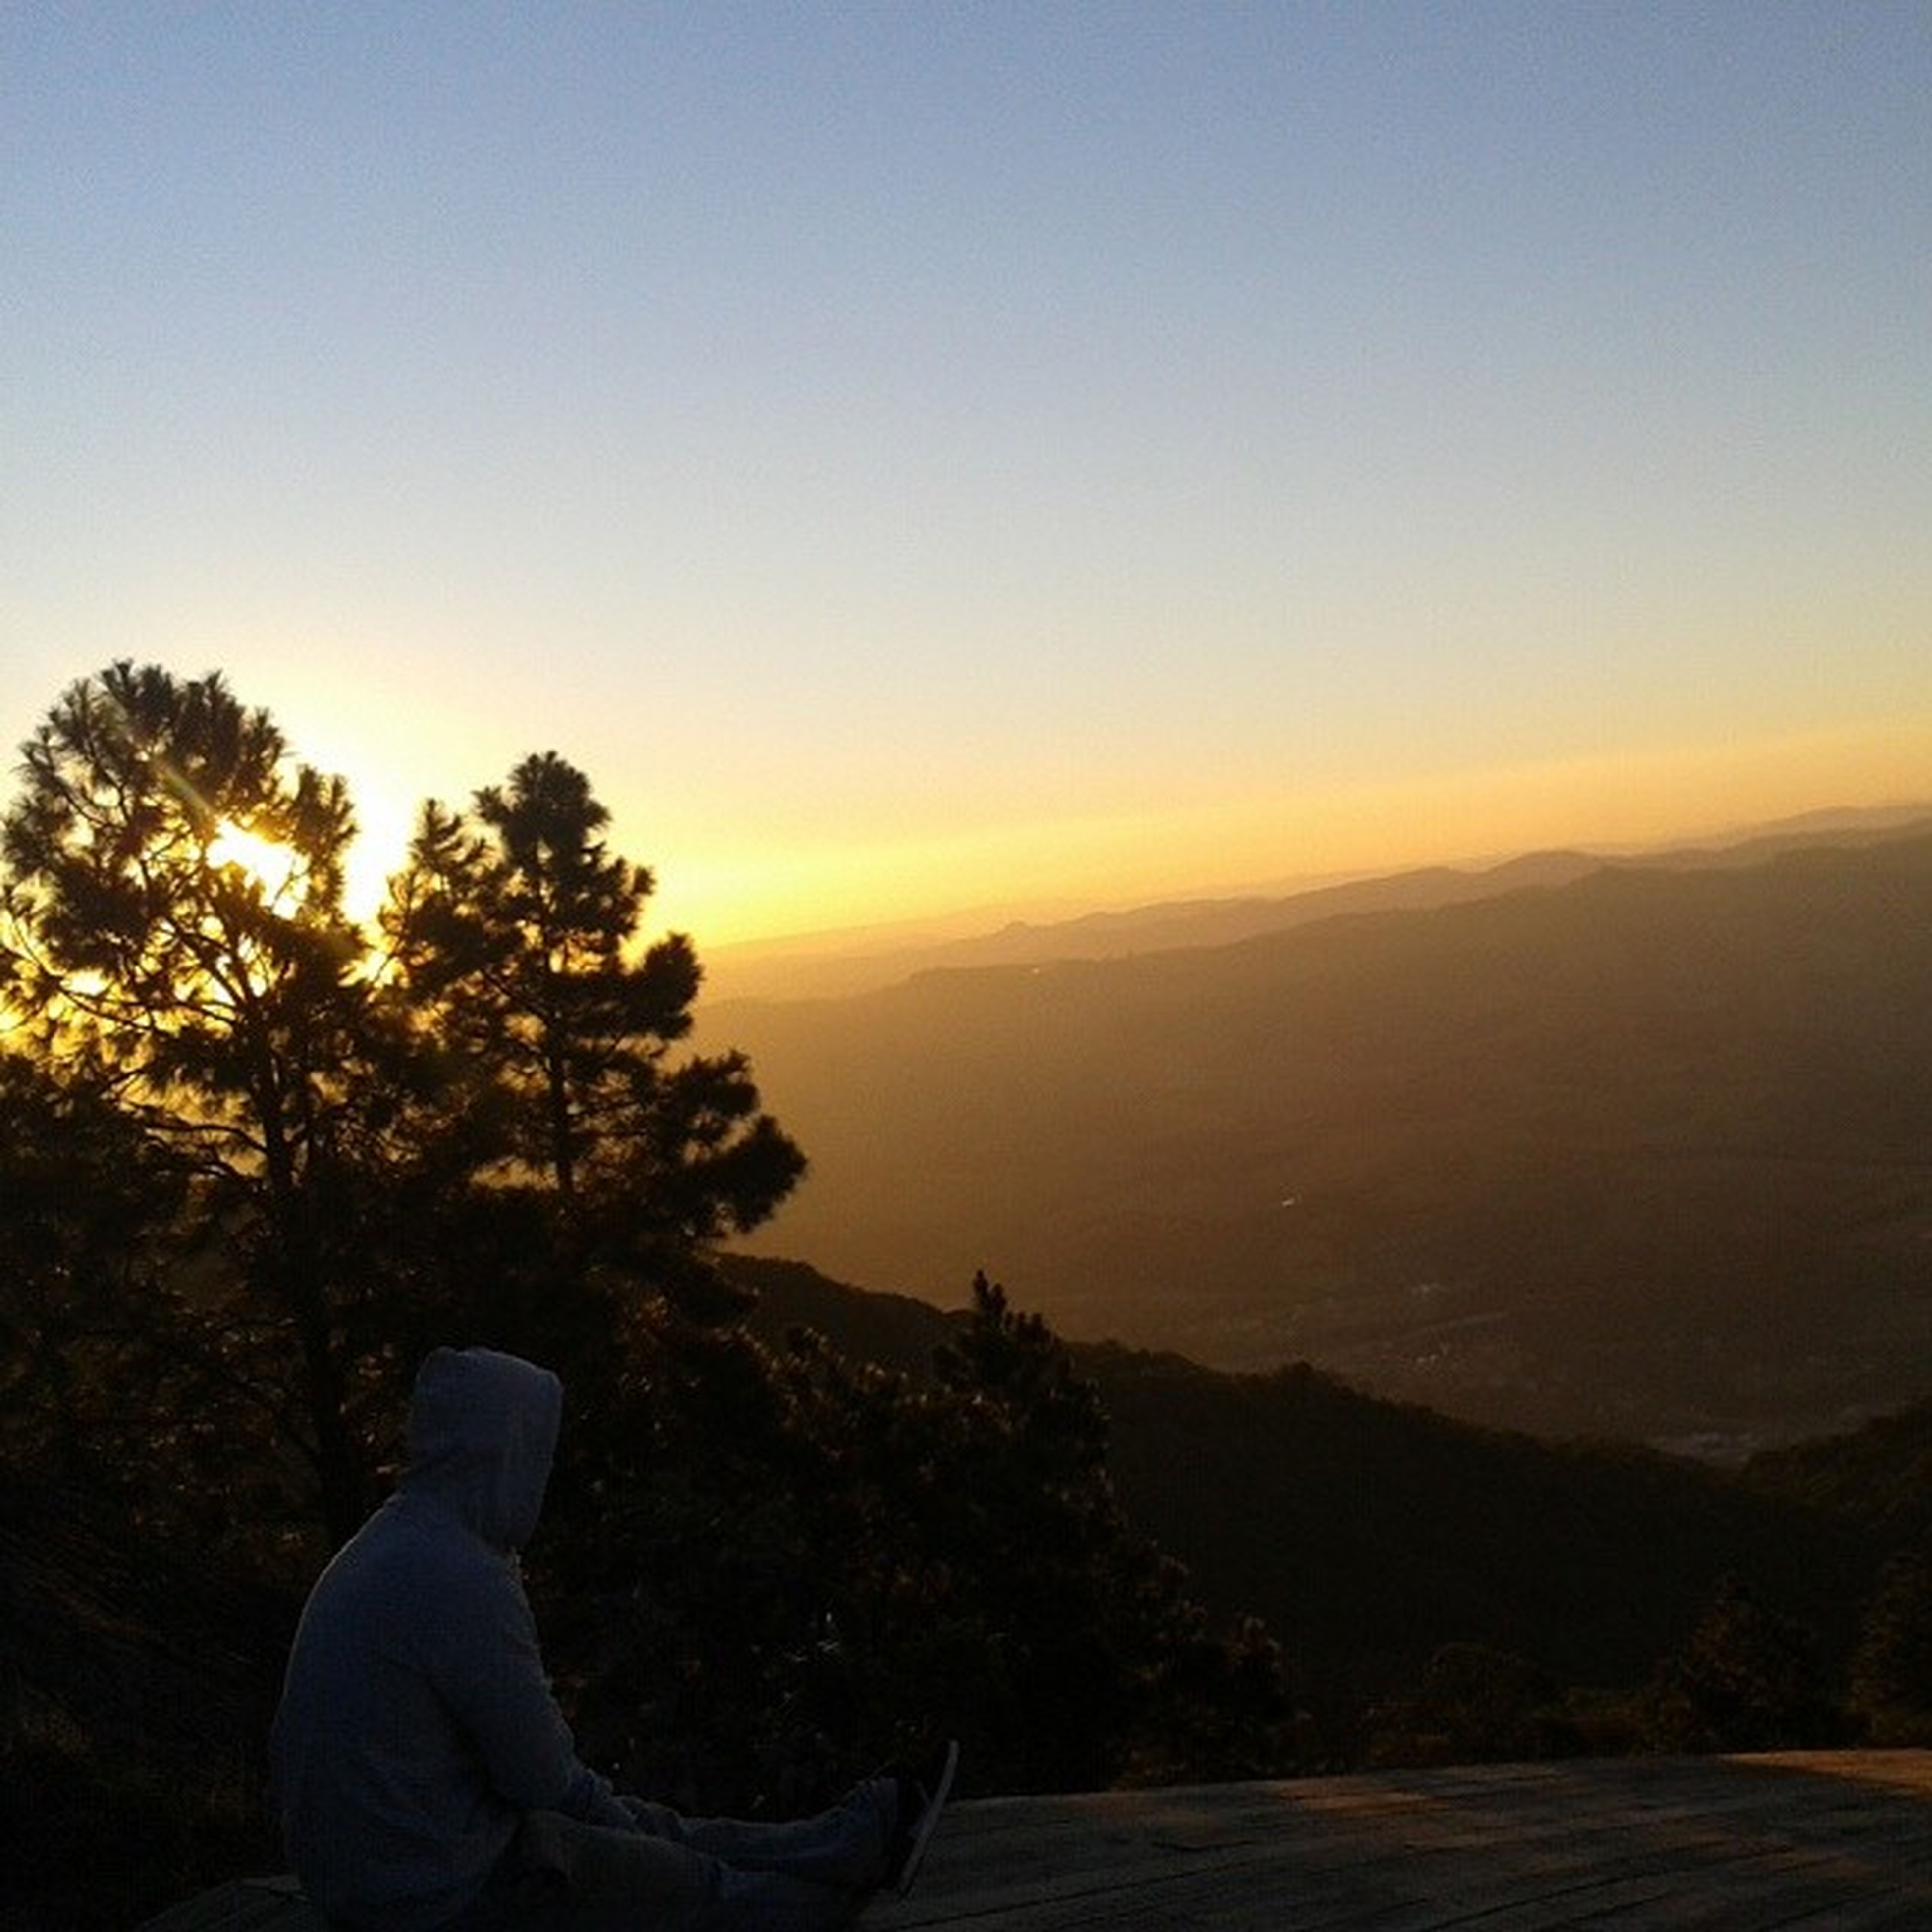 sunset, tranquility, tranquil scene, scenics, beauty in nature, landscape, mountain, silhouette, copy space, clear sky, nature, sky, one person, idyllic, non-urban scene, orange color, tree, remote, mountain range, hill